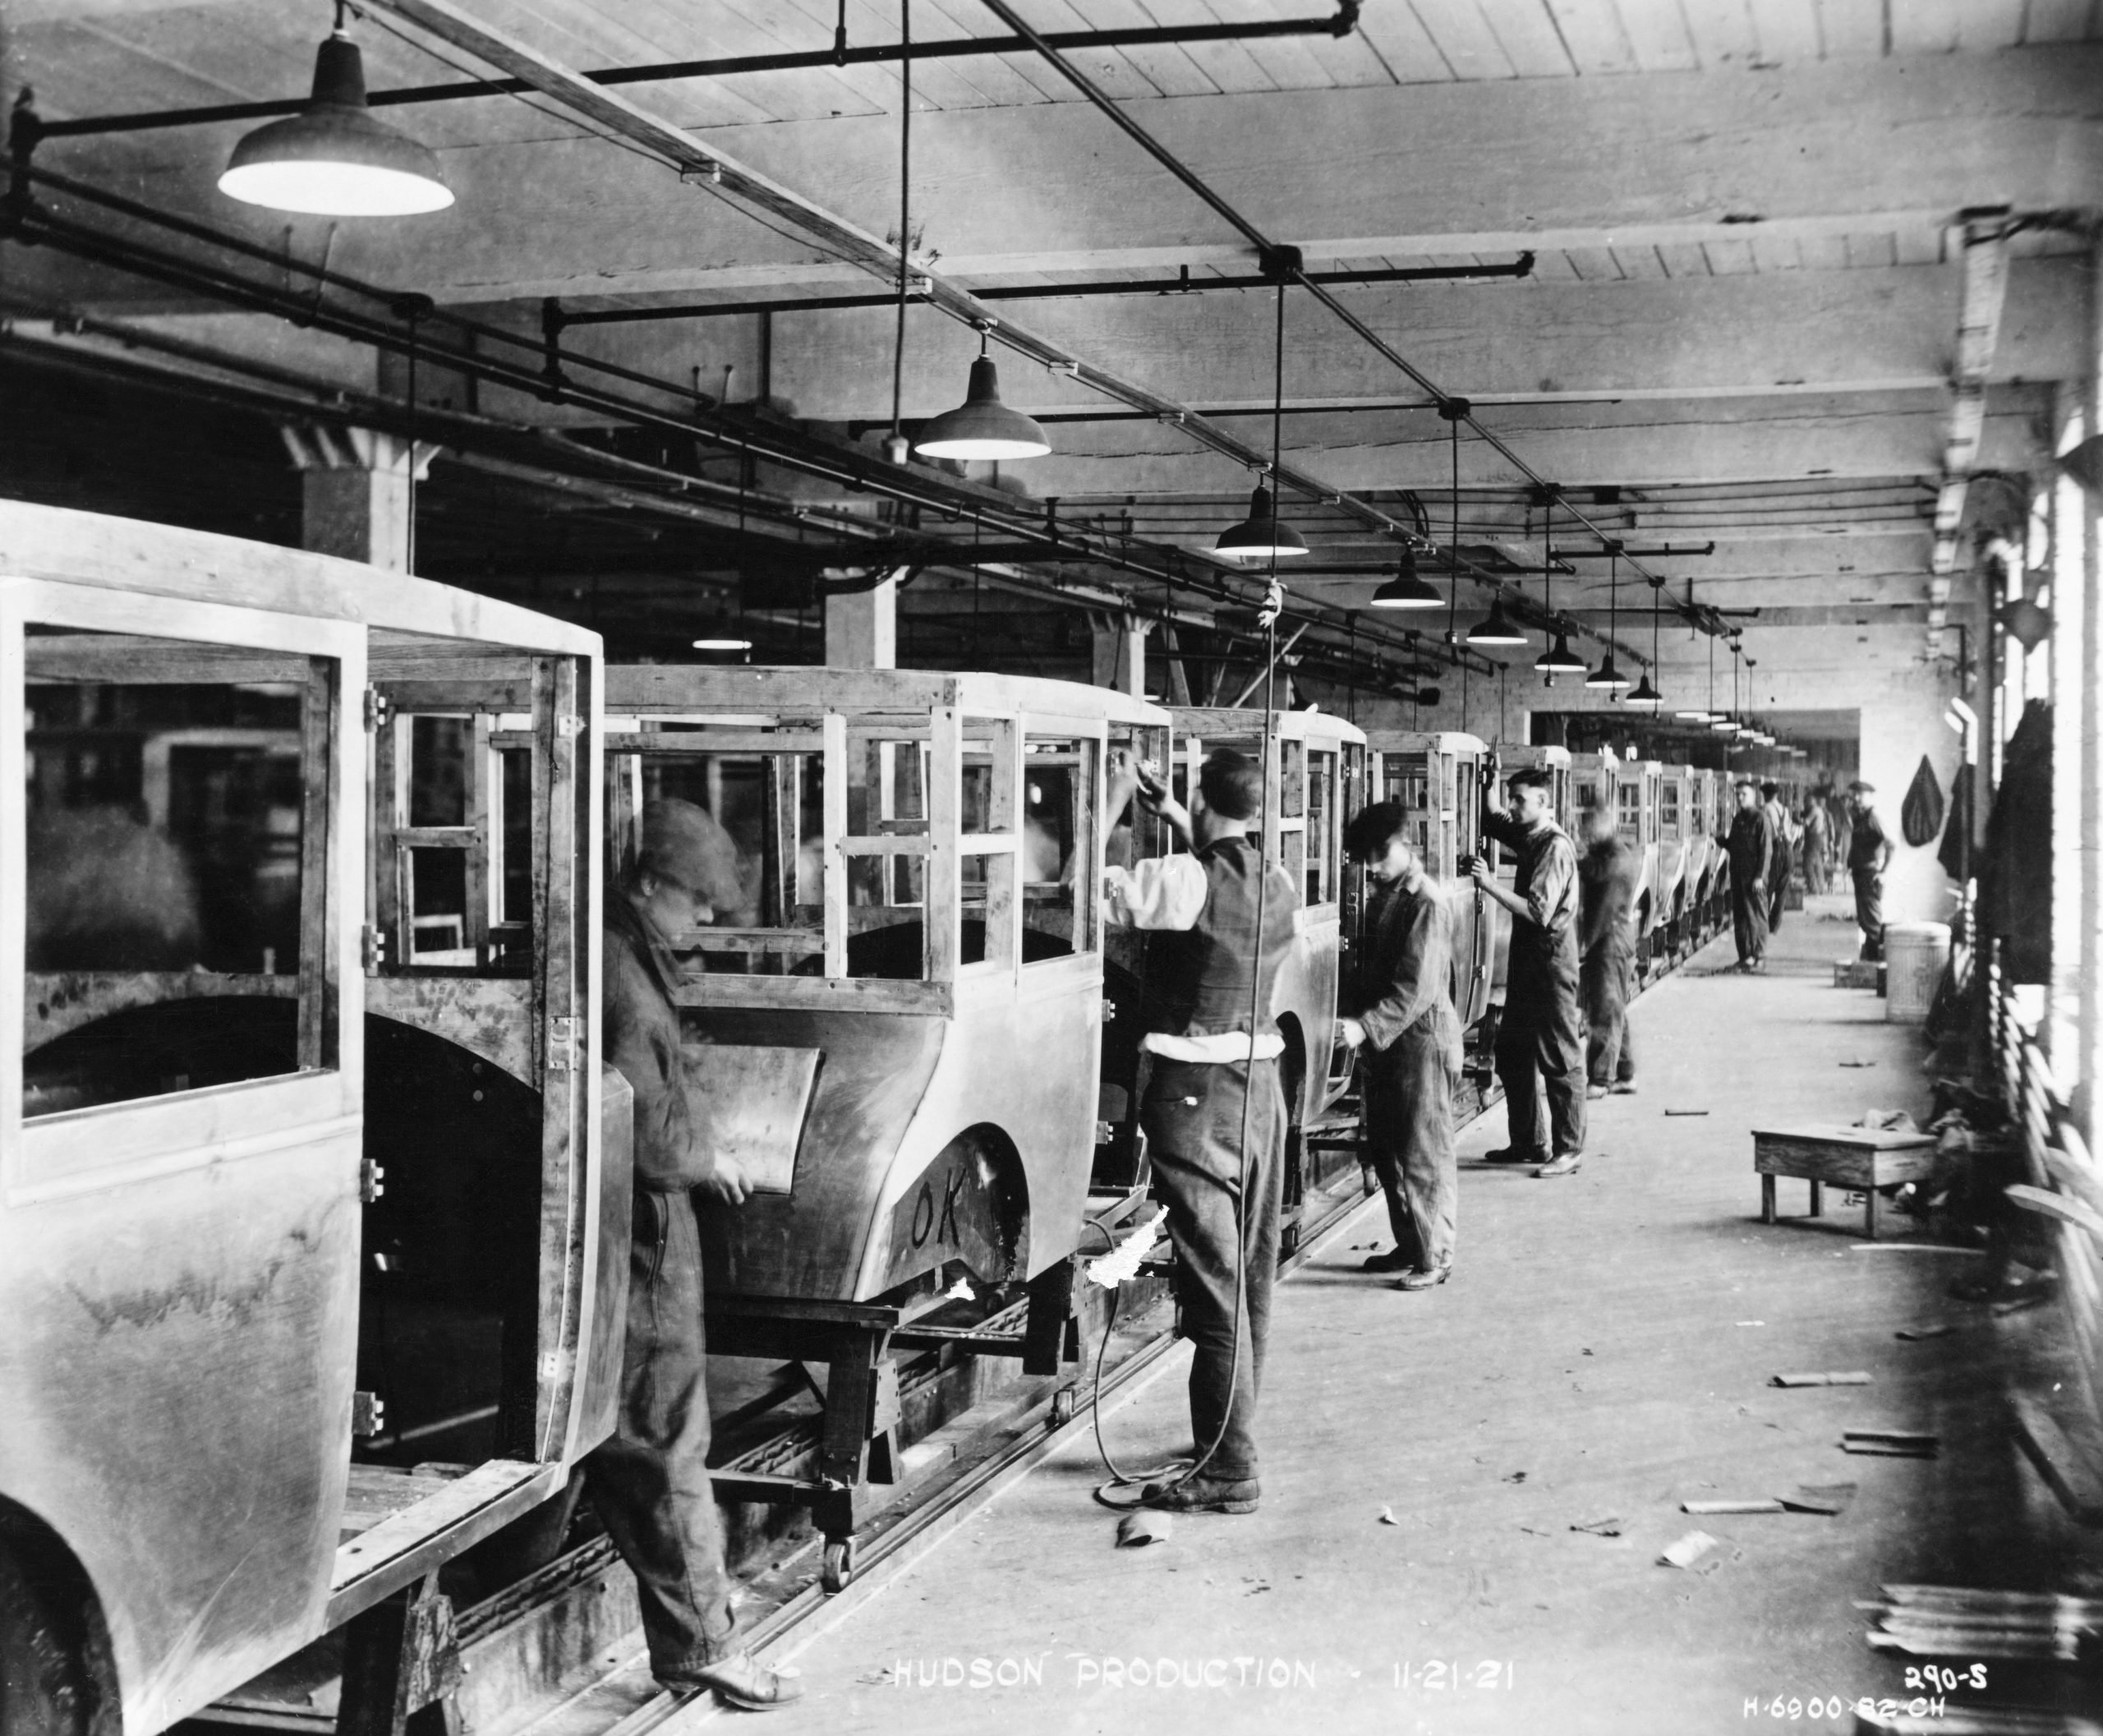 View of Hudson Factory Production Line